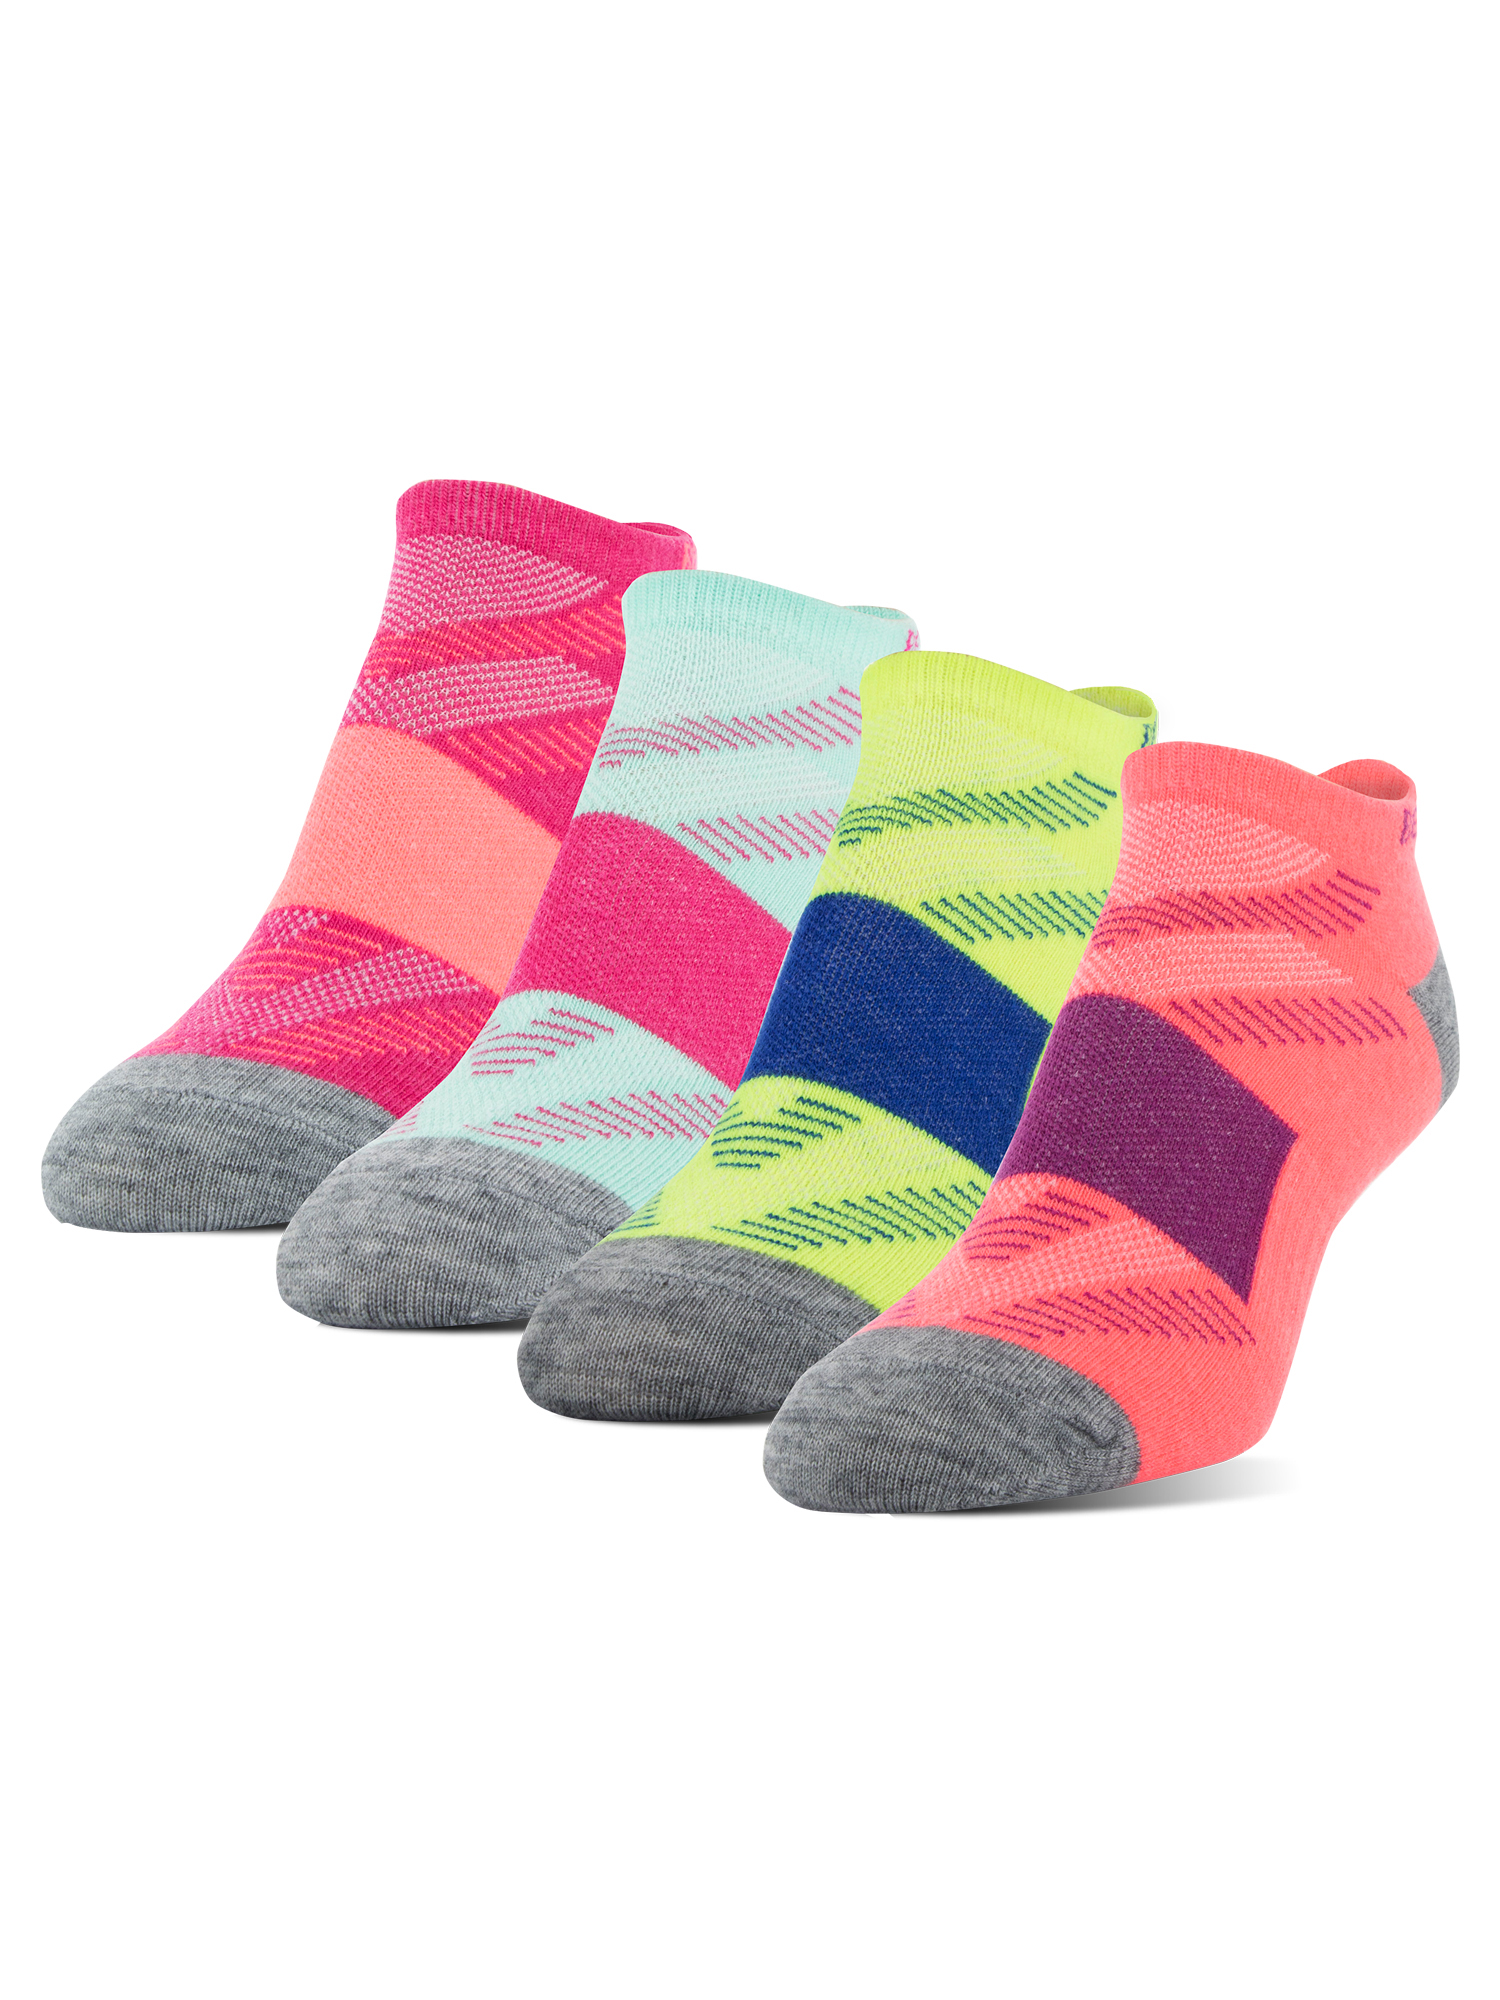 Women's Wool Ultralite No Show Socks, 4 Pairs